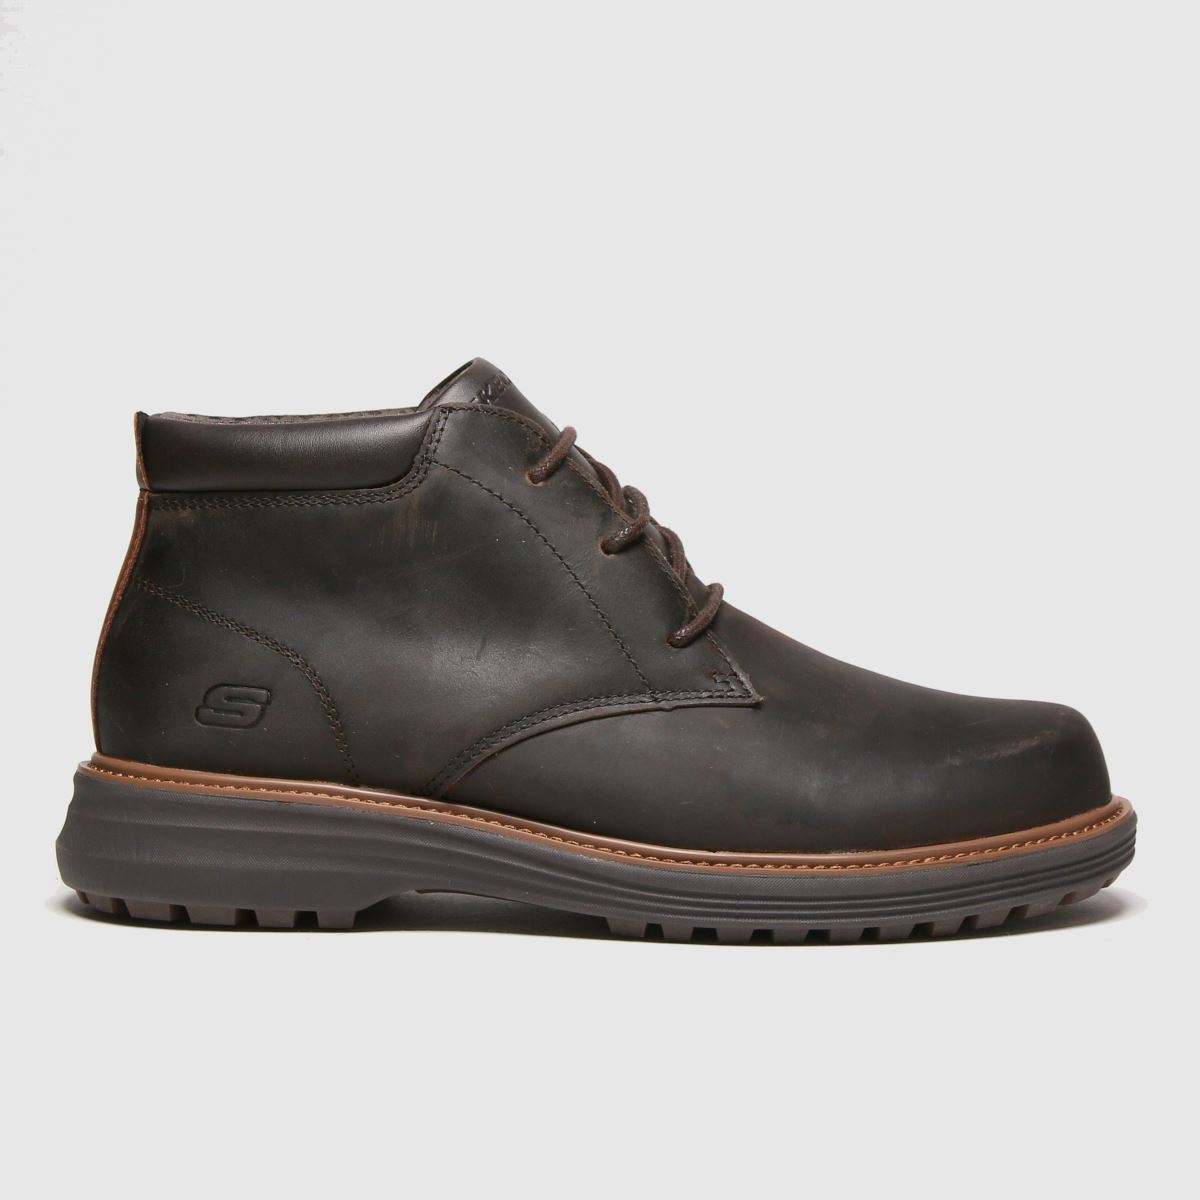 SKECHERS Dark Brown Wenson Boots